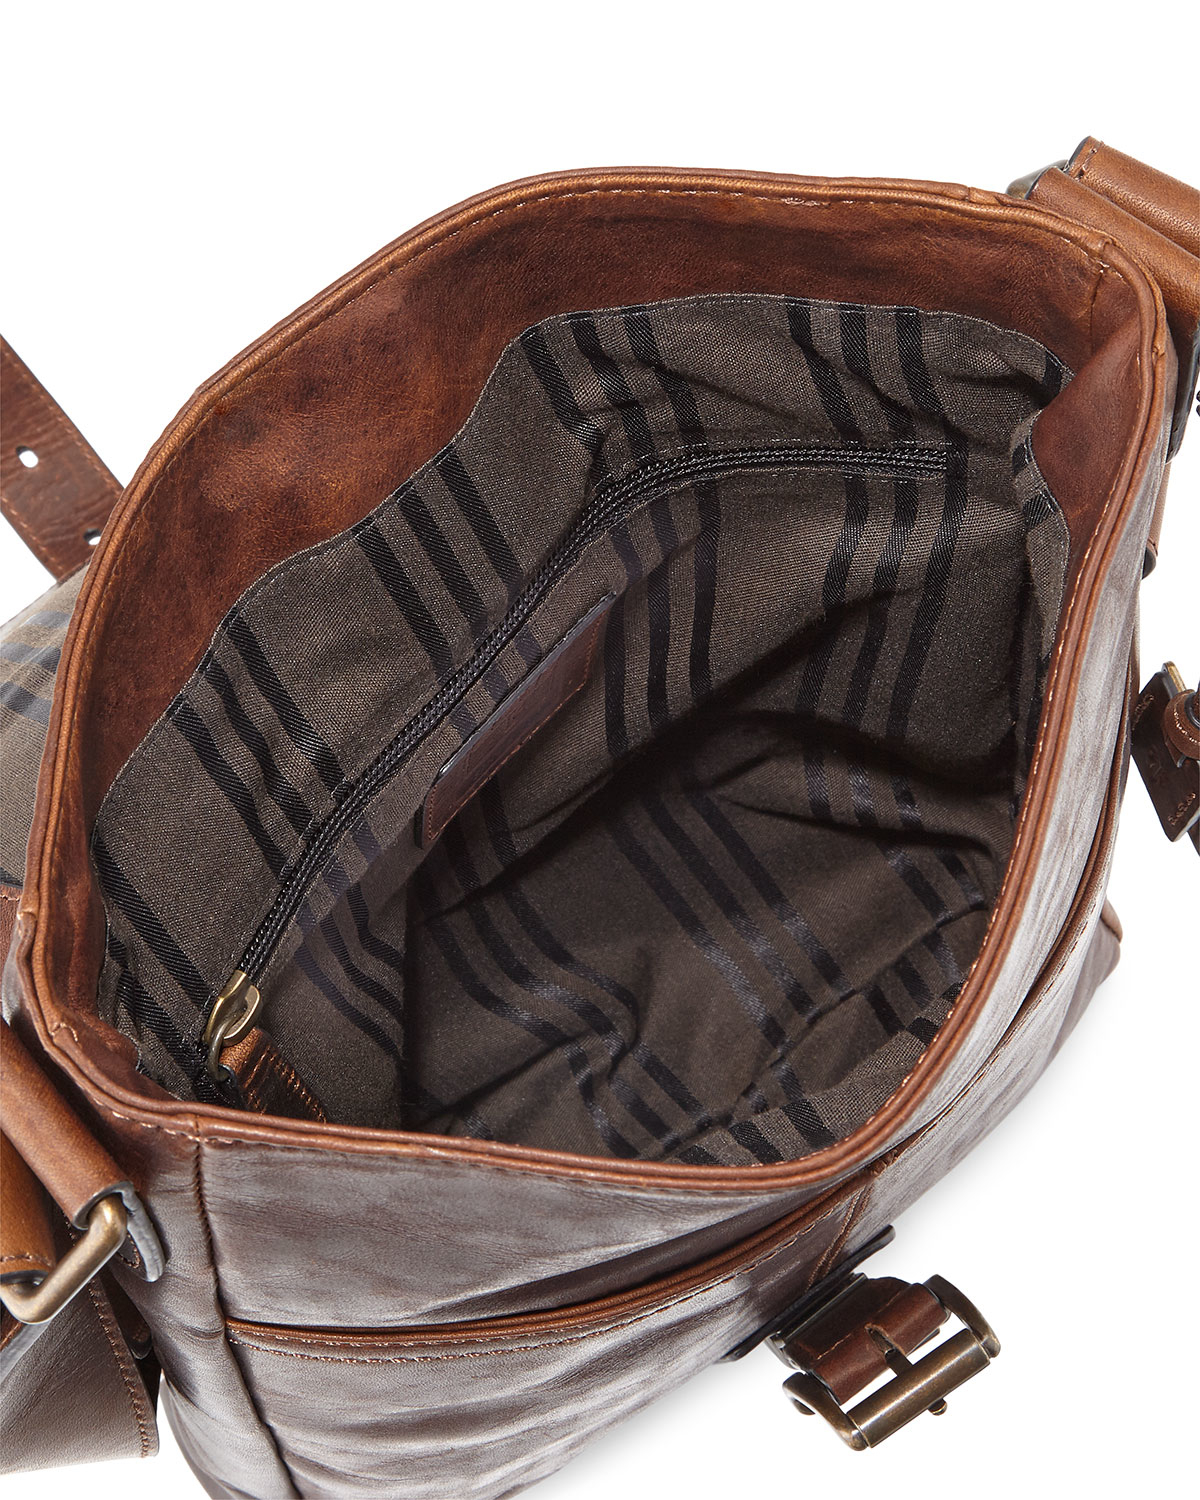 Lyst - Frye Logan Small Leather Messenger Bag in Brown for Men cb7704f872e62